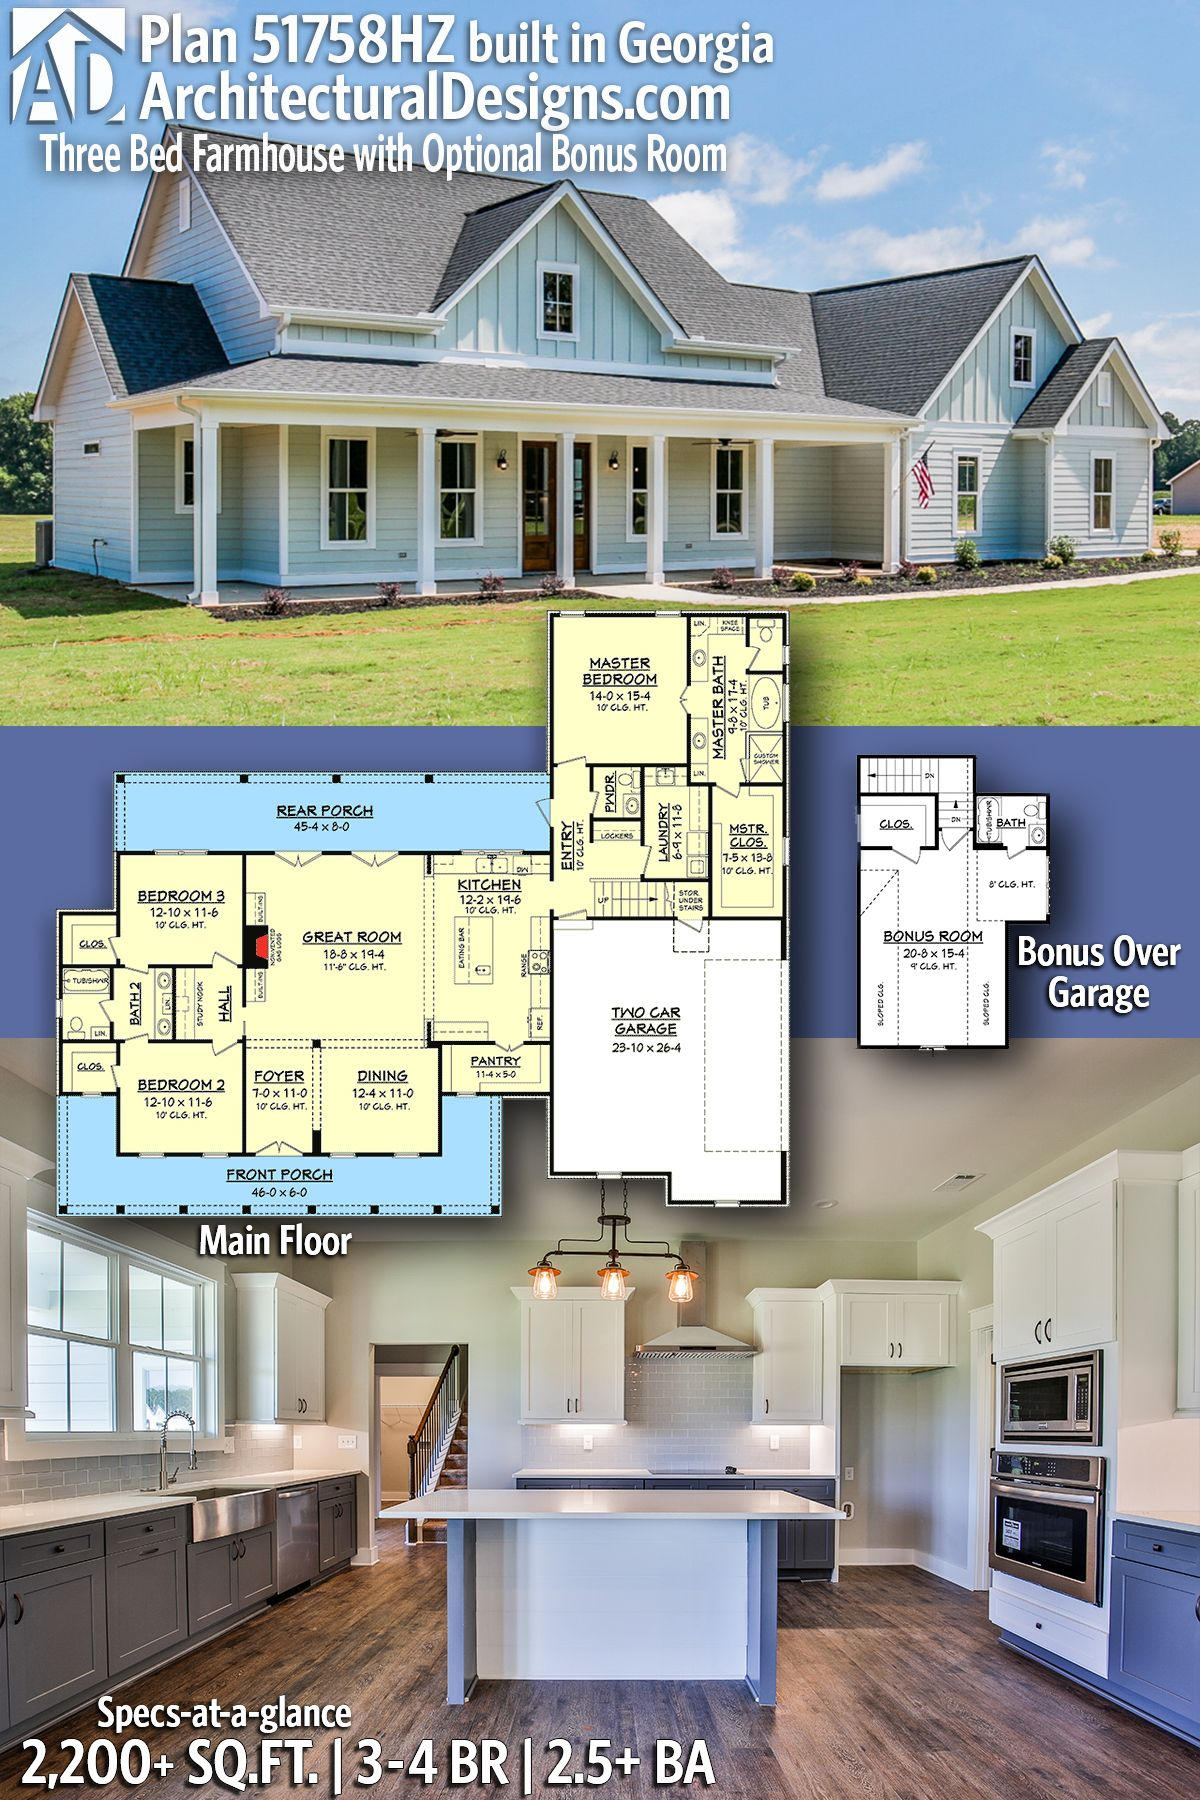 Plan 51758HZ Three Bed Farmhouse with Optional